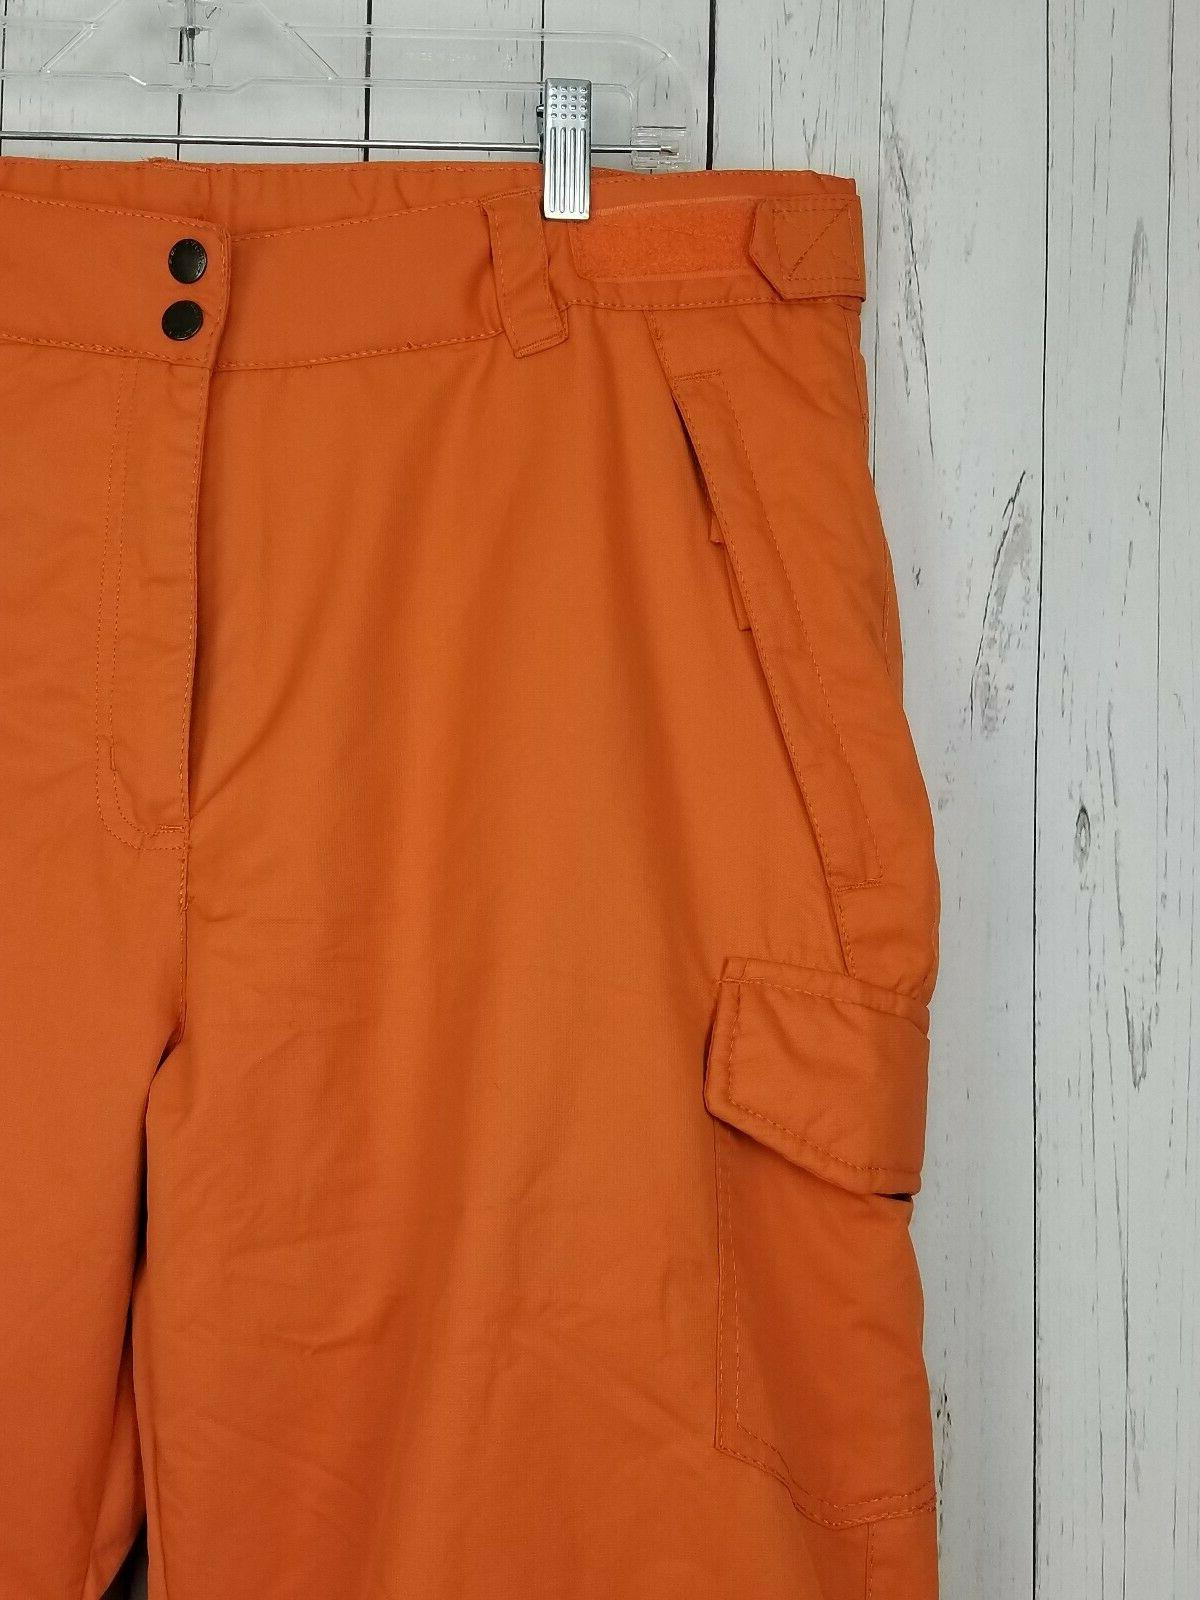 NWT Cargo Pants Orange